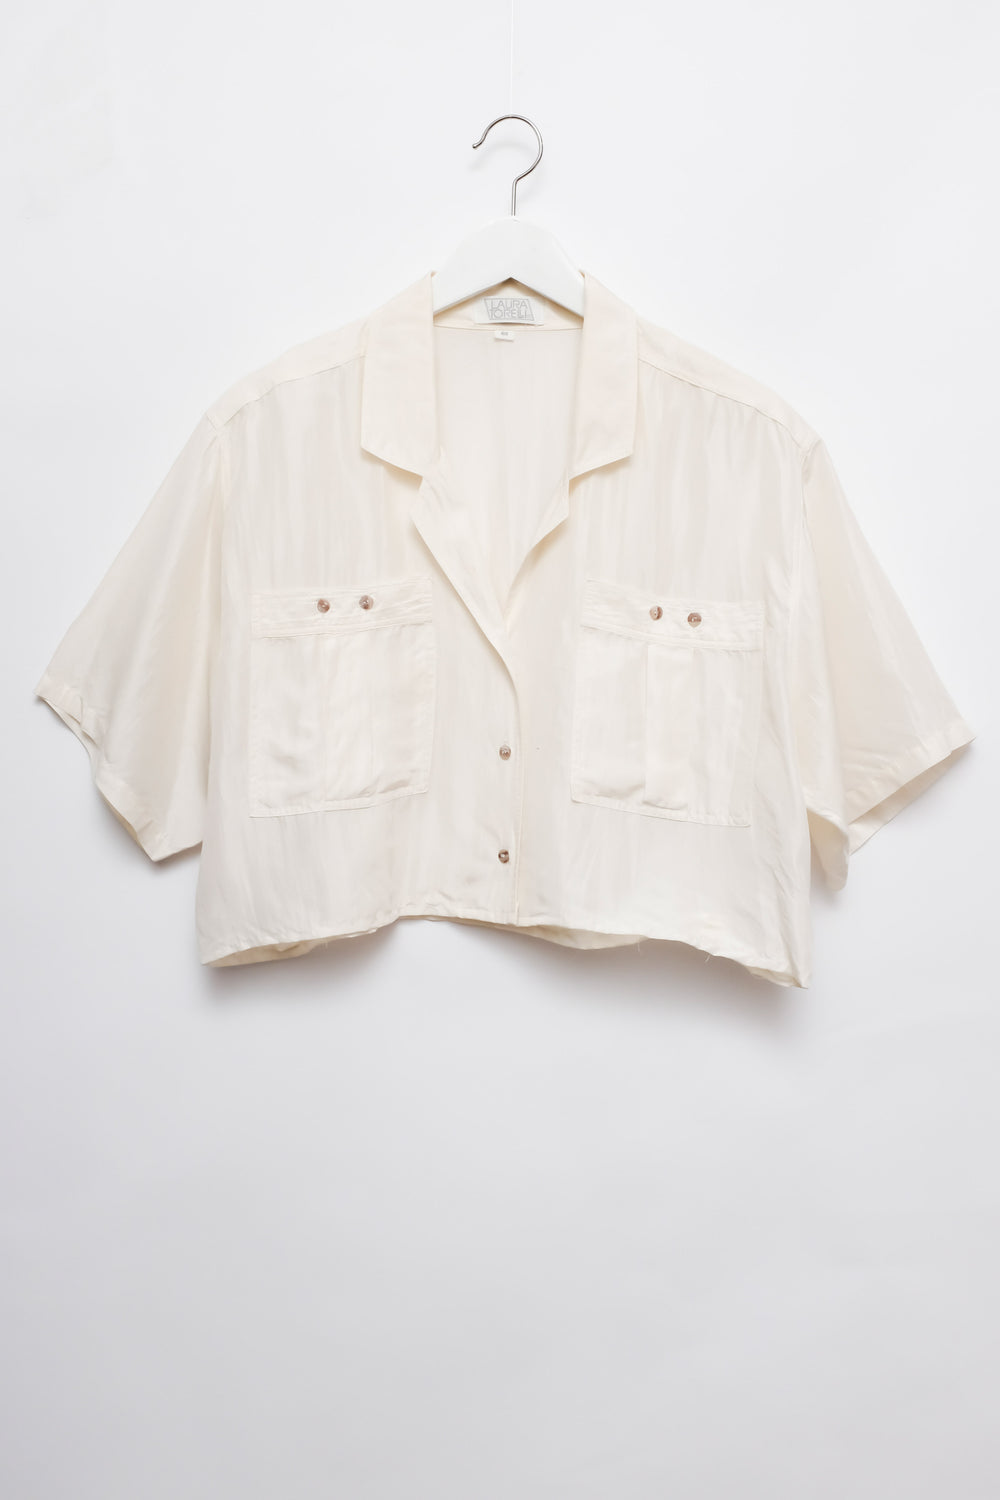 0015_SILK IVORY CROP VINTAGE SHIRT